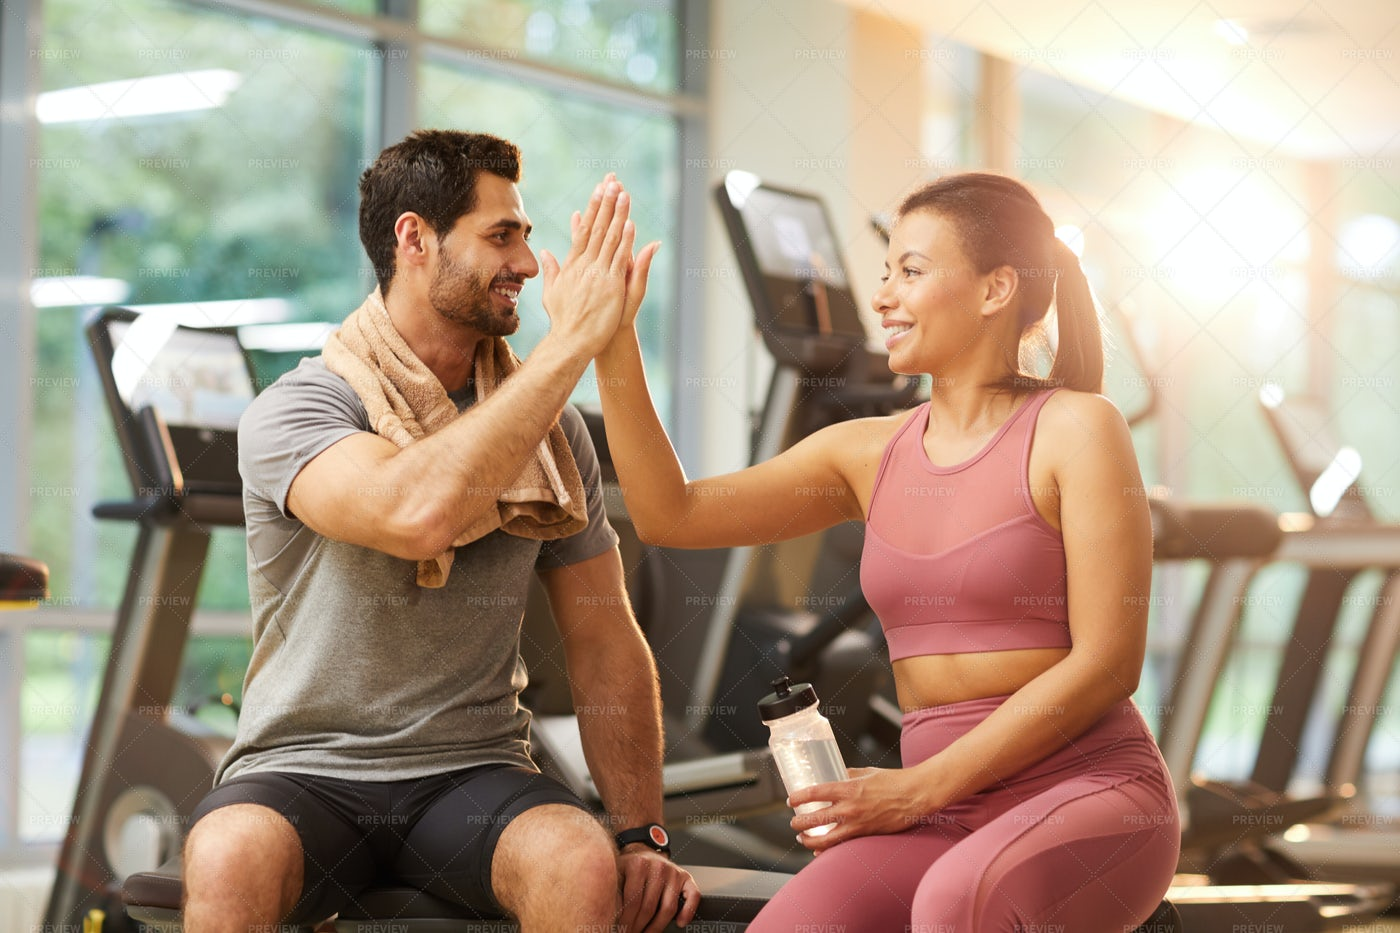 Couple High Fiving In Gym: Stock Photos